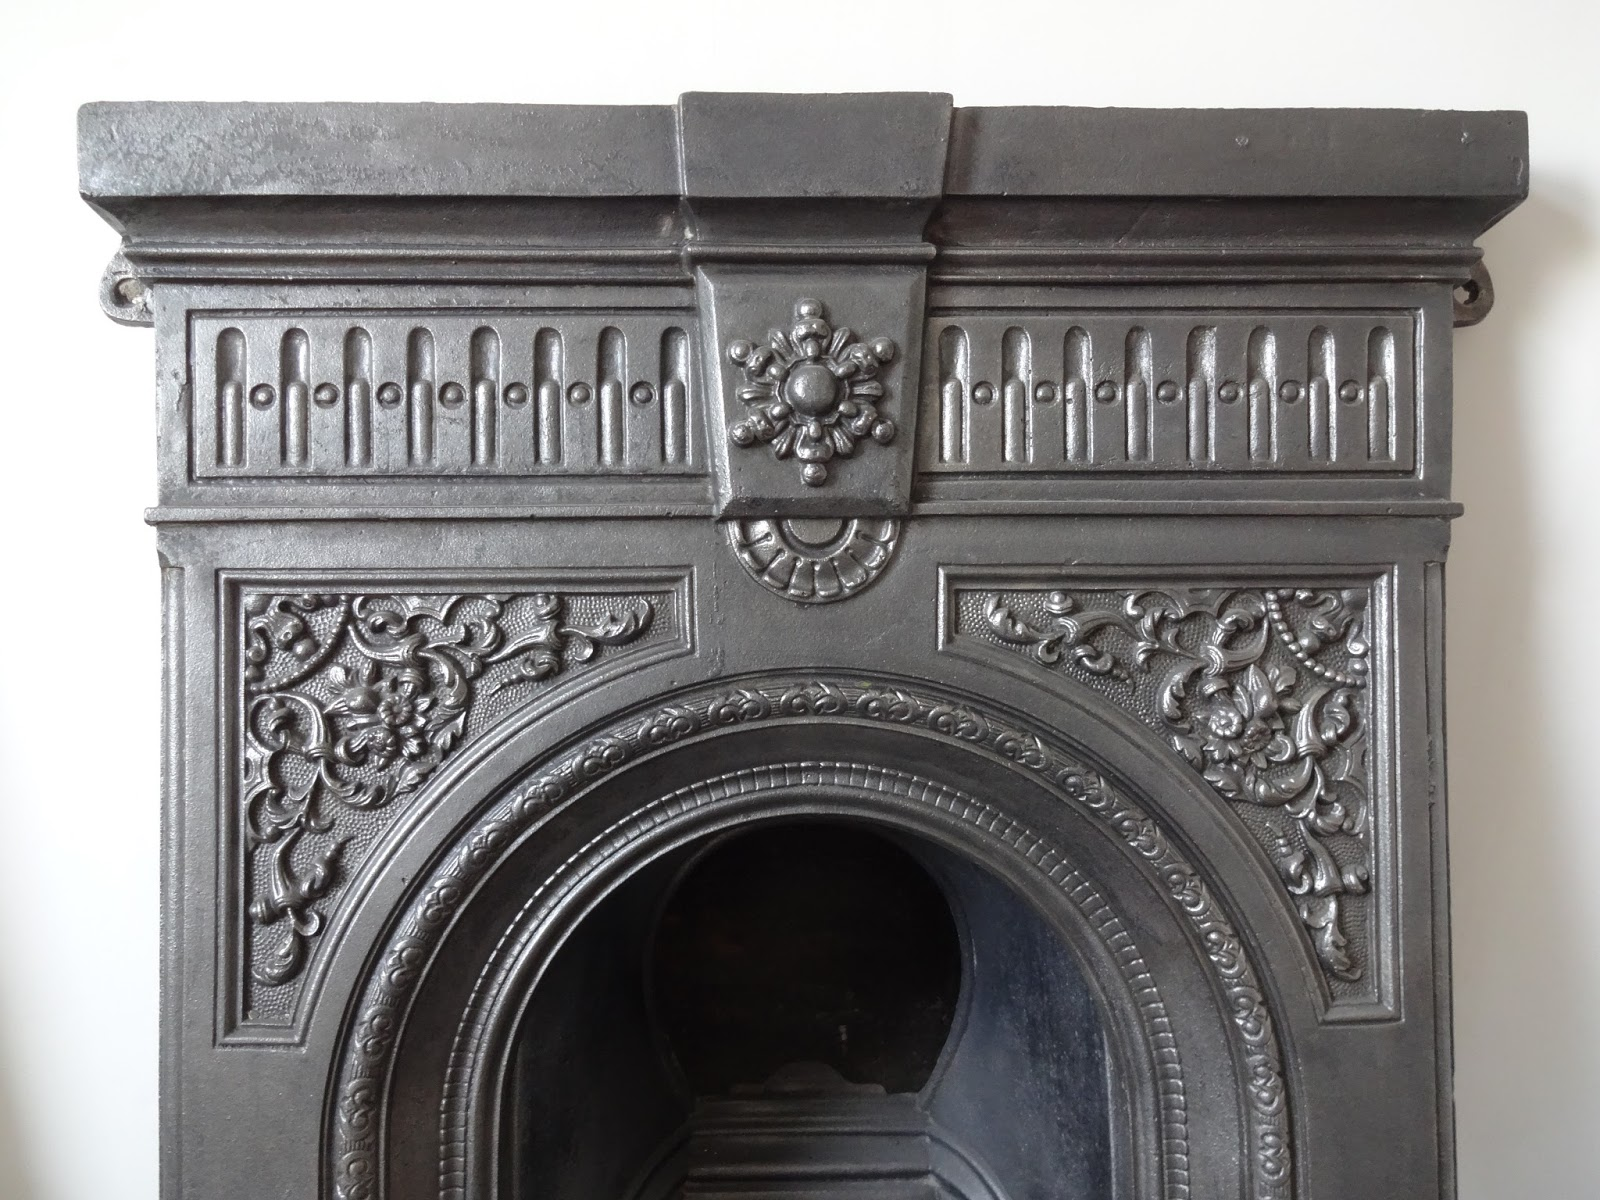 Uk Home Renovation Interiors And Diy Blog: victorian fireplace restoration